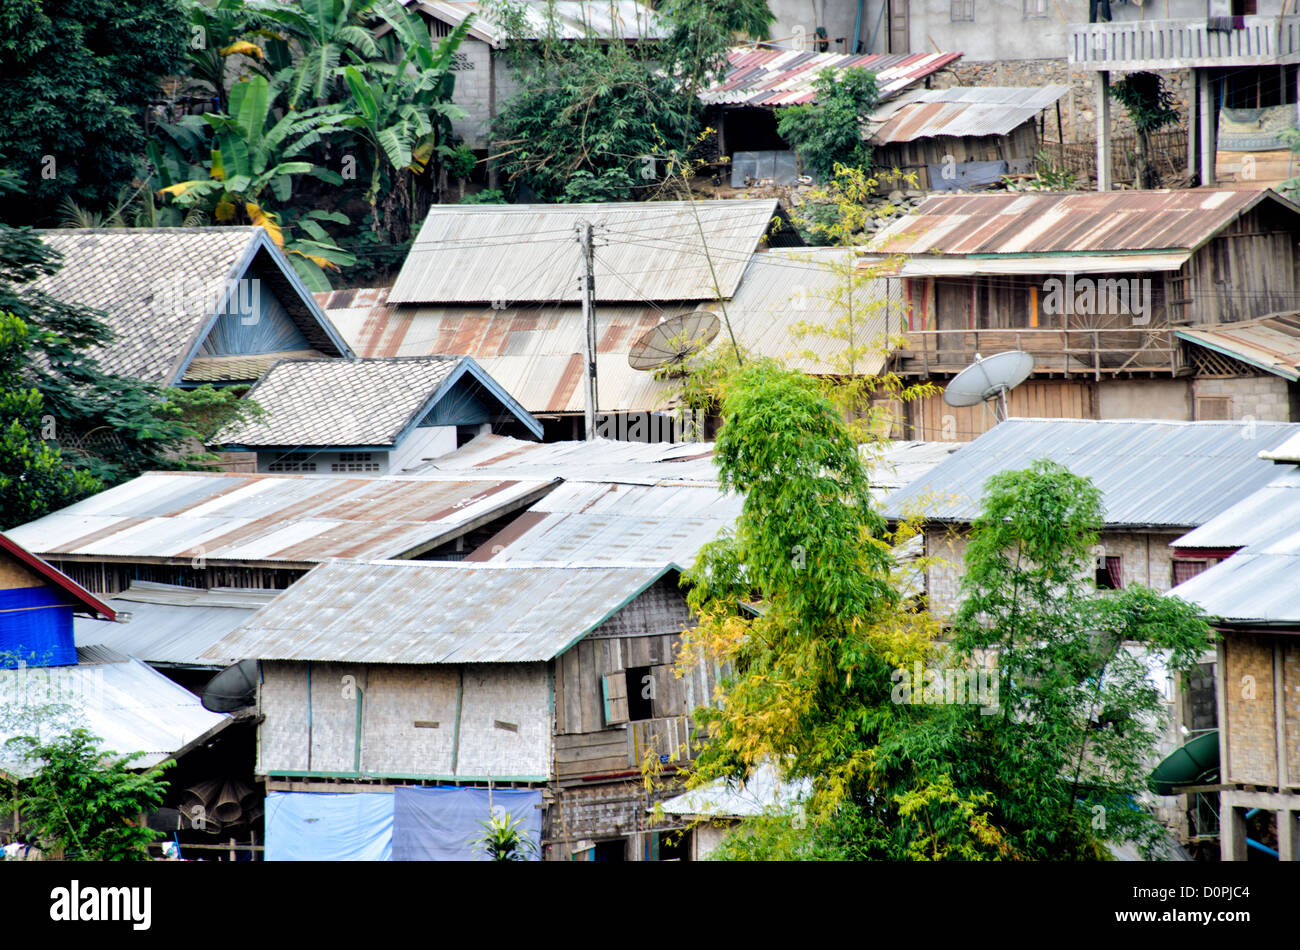 NONG KHIAW, Laos - Houses in Nong Khiaw in northern Laos. - Stock Image